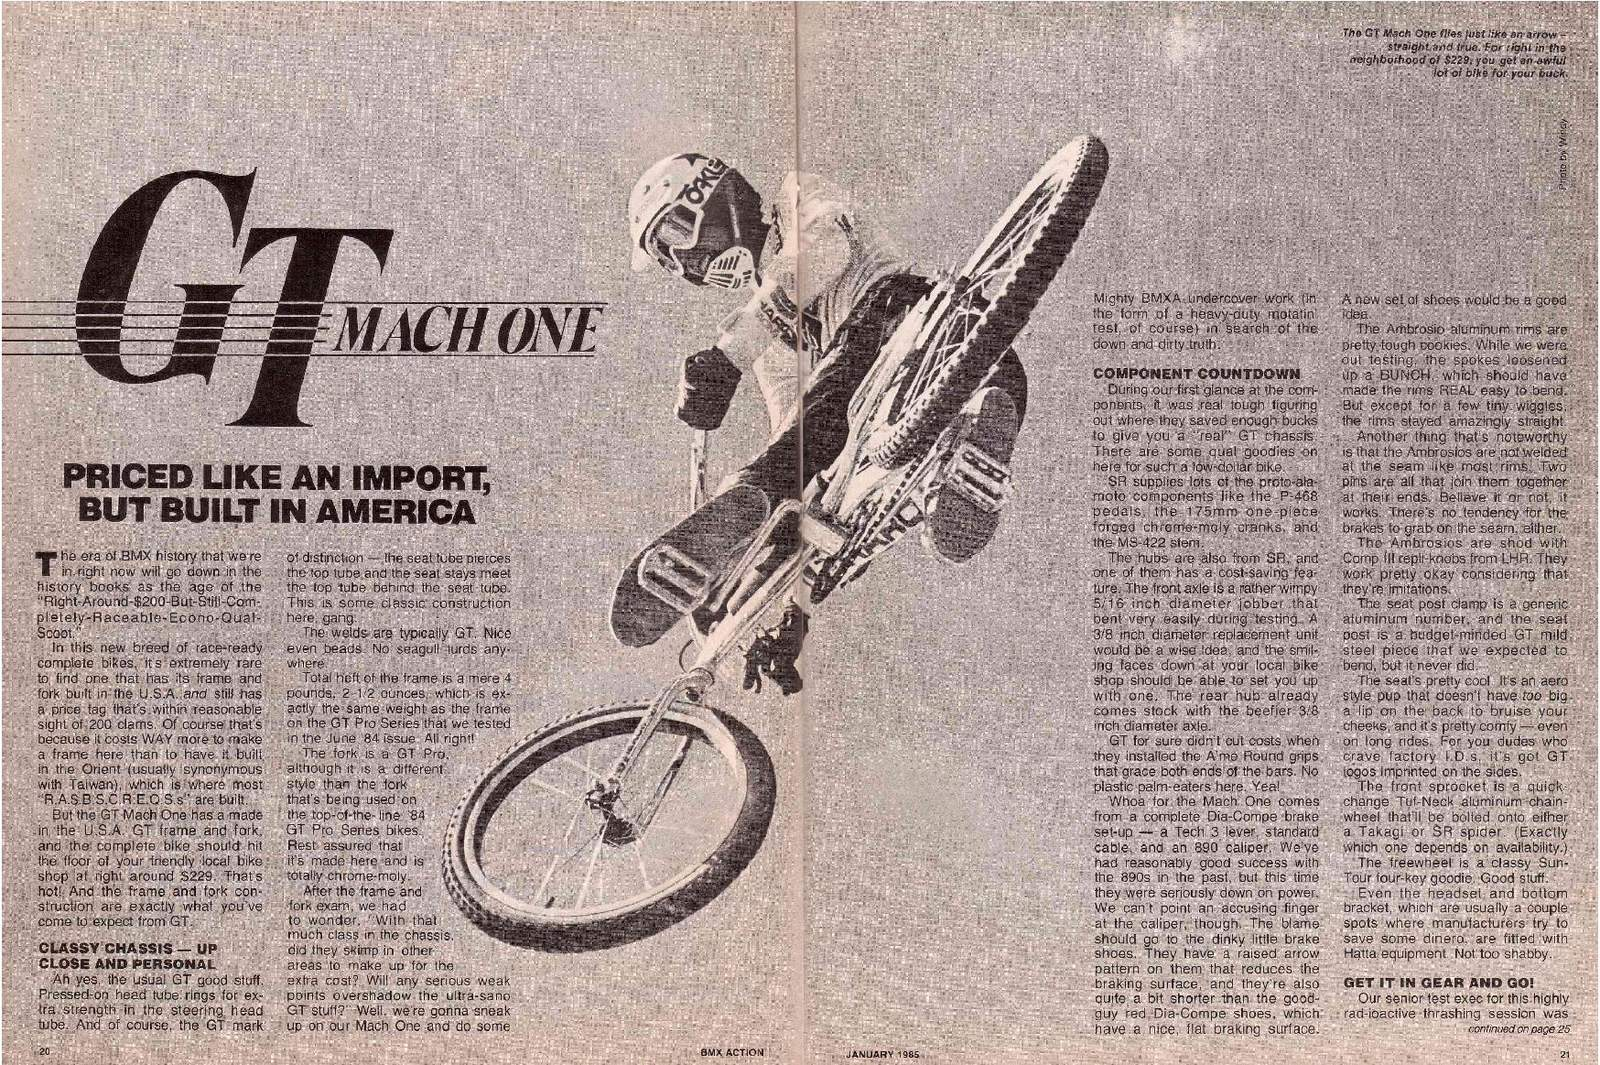 https://s3.amazonaws.com/uploads.bmxmuseum.com/user-images/45231/1985-gt-mach-one---ad---a-page-0015994e4b903.jpg